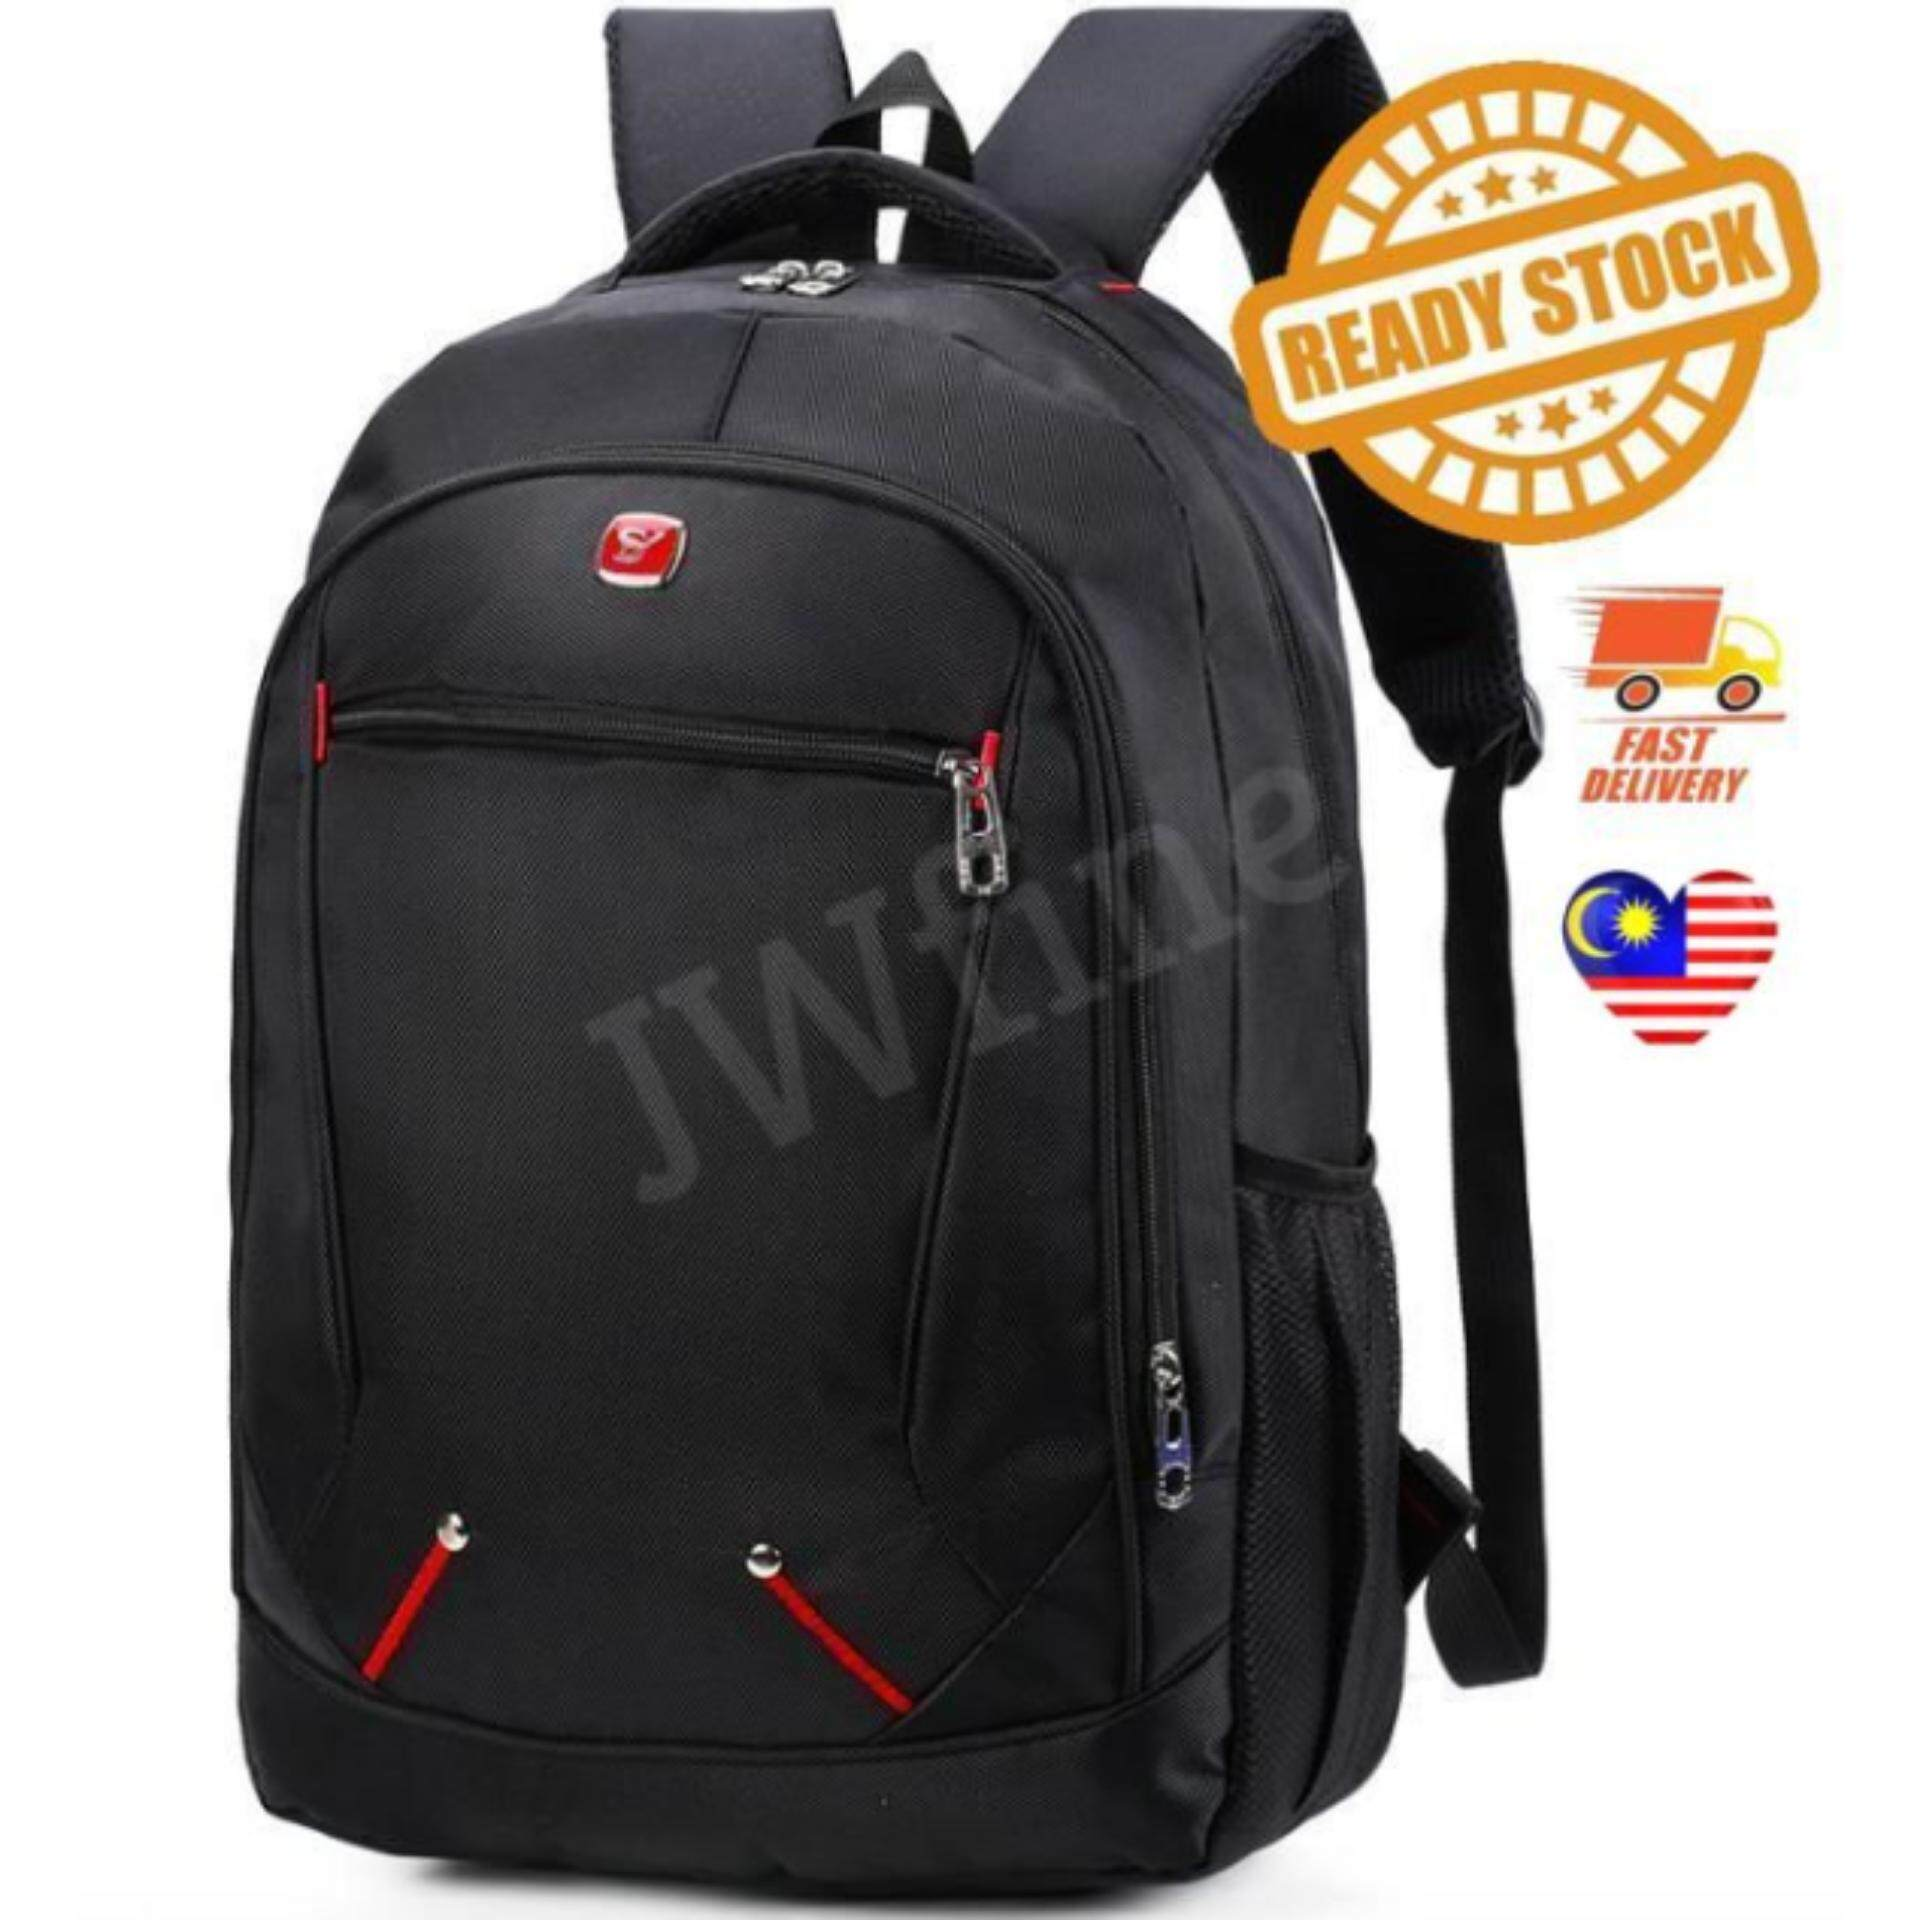 cb11a7e9a07 Laptop Backpacks - Buy Laptop Backpacks at Best Price in Malaysia ...